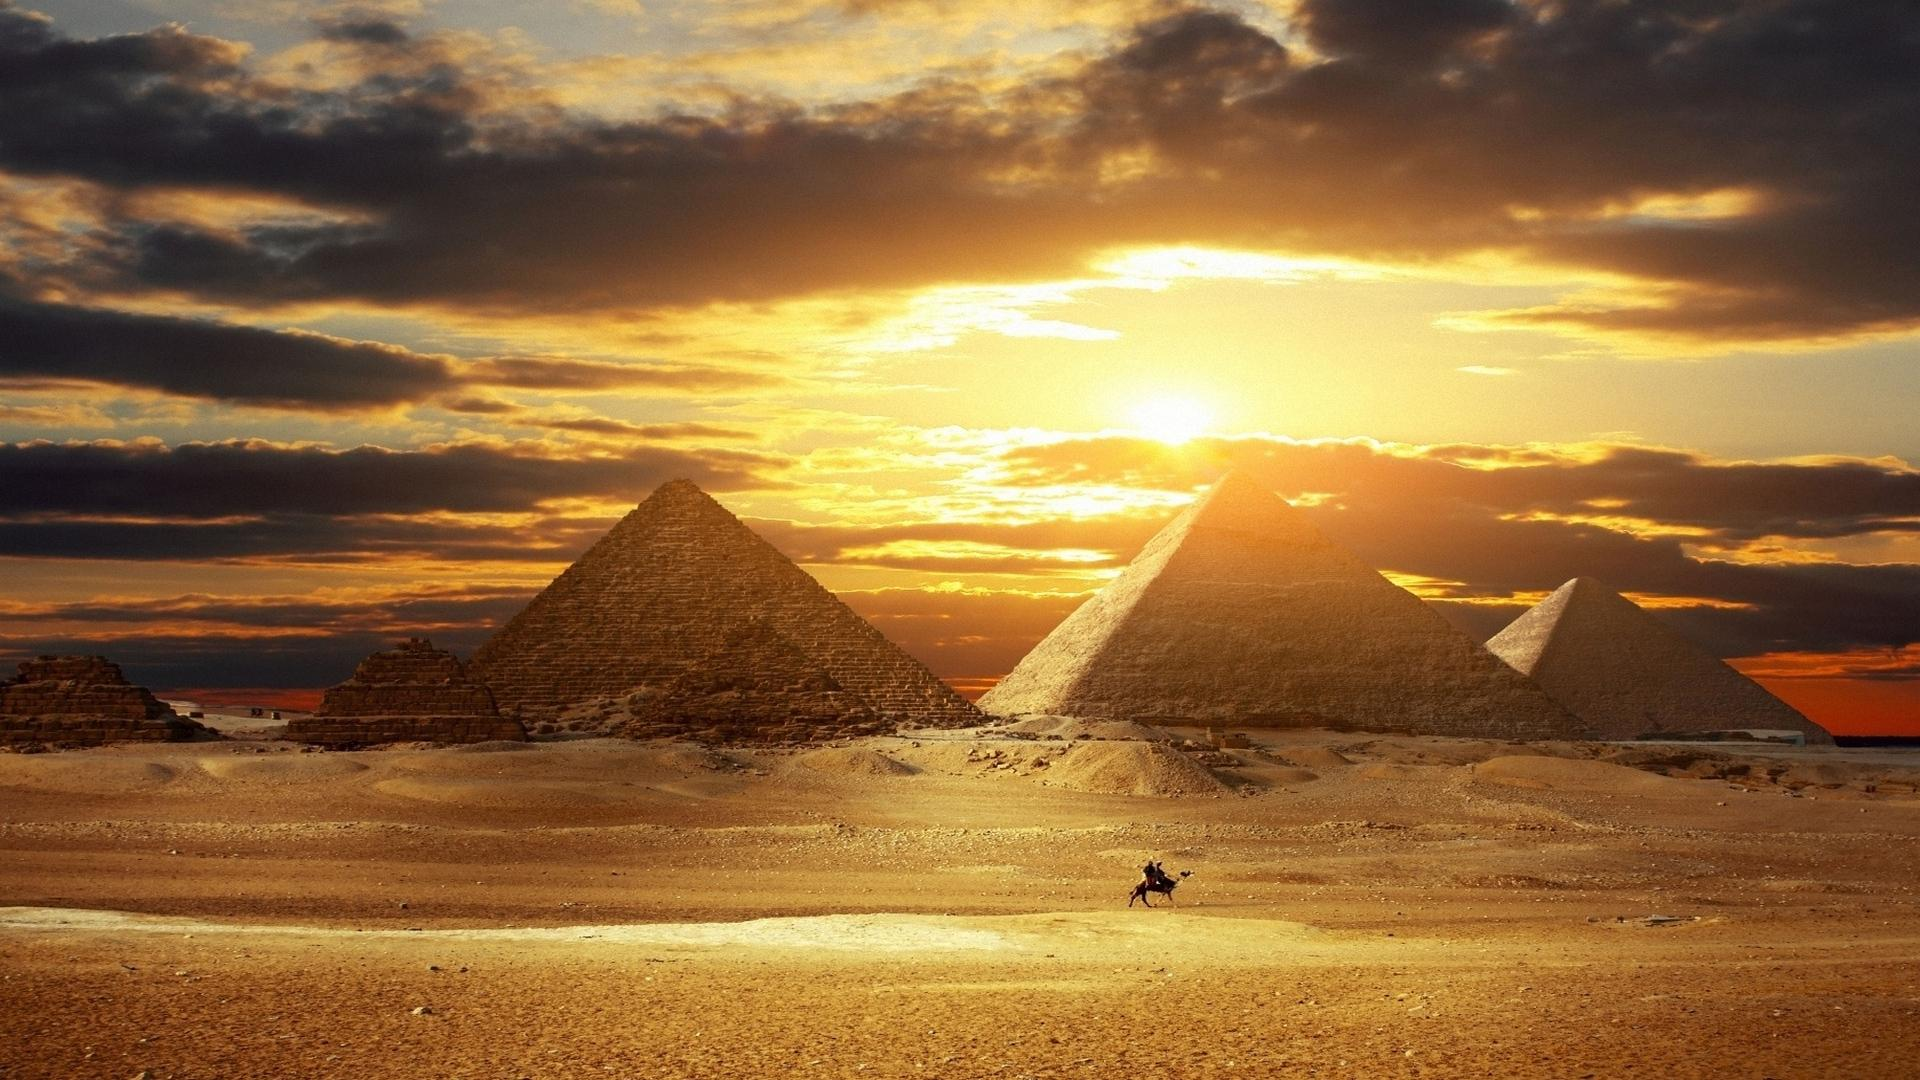 Pyramid wallpapers HD quality